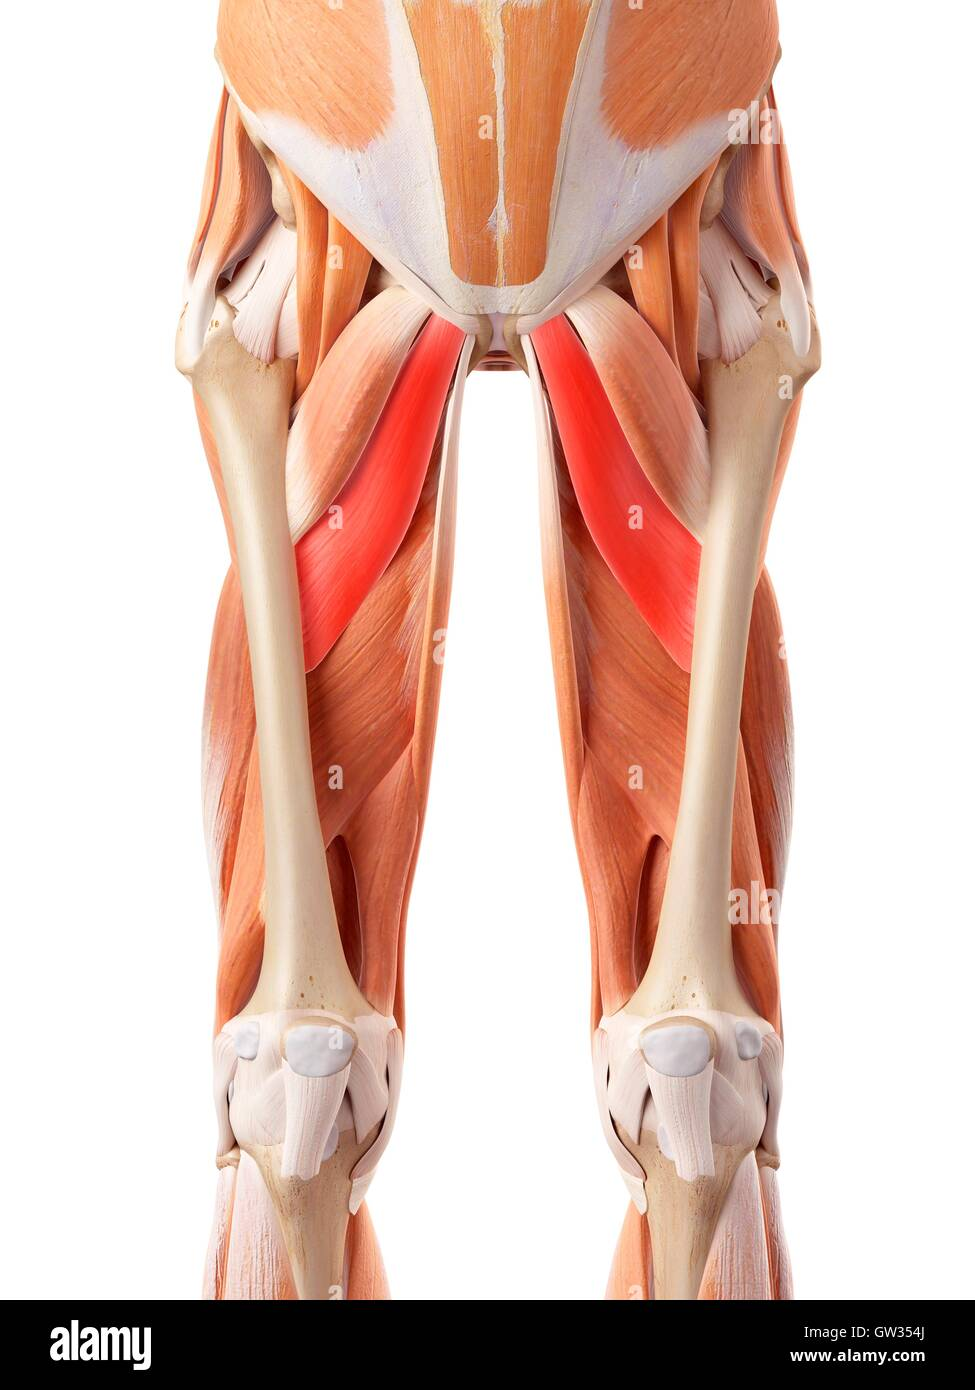 Human muscular system of the legs, illustration Stock Photo ...